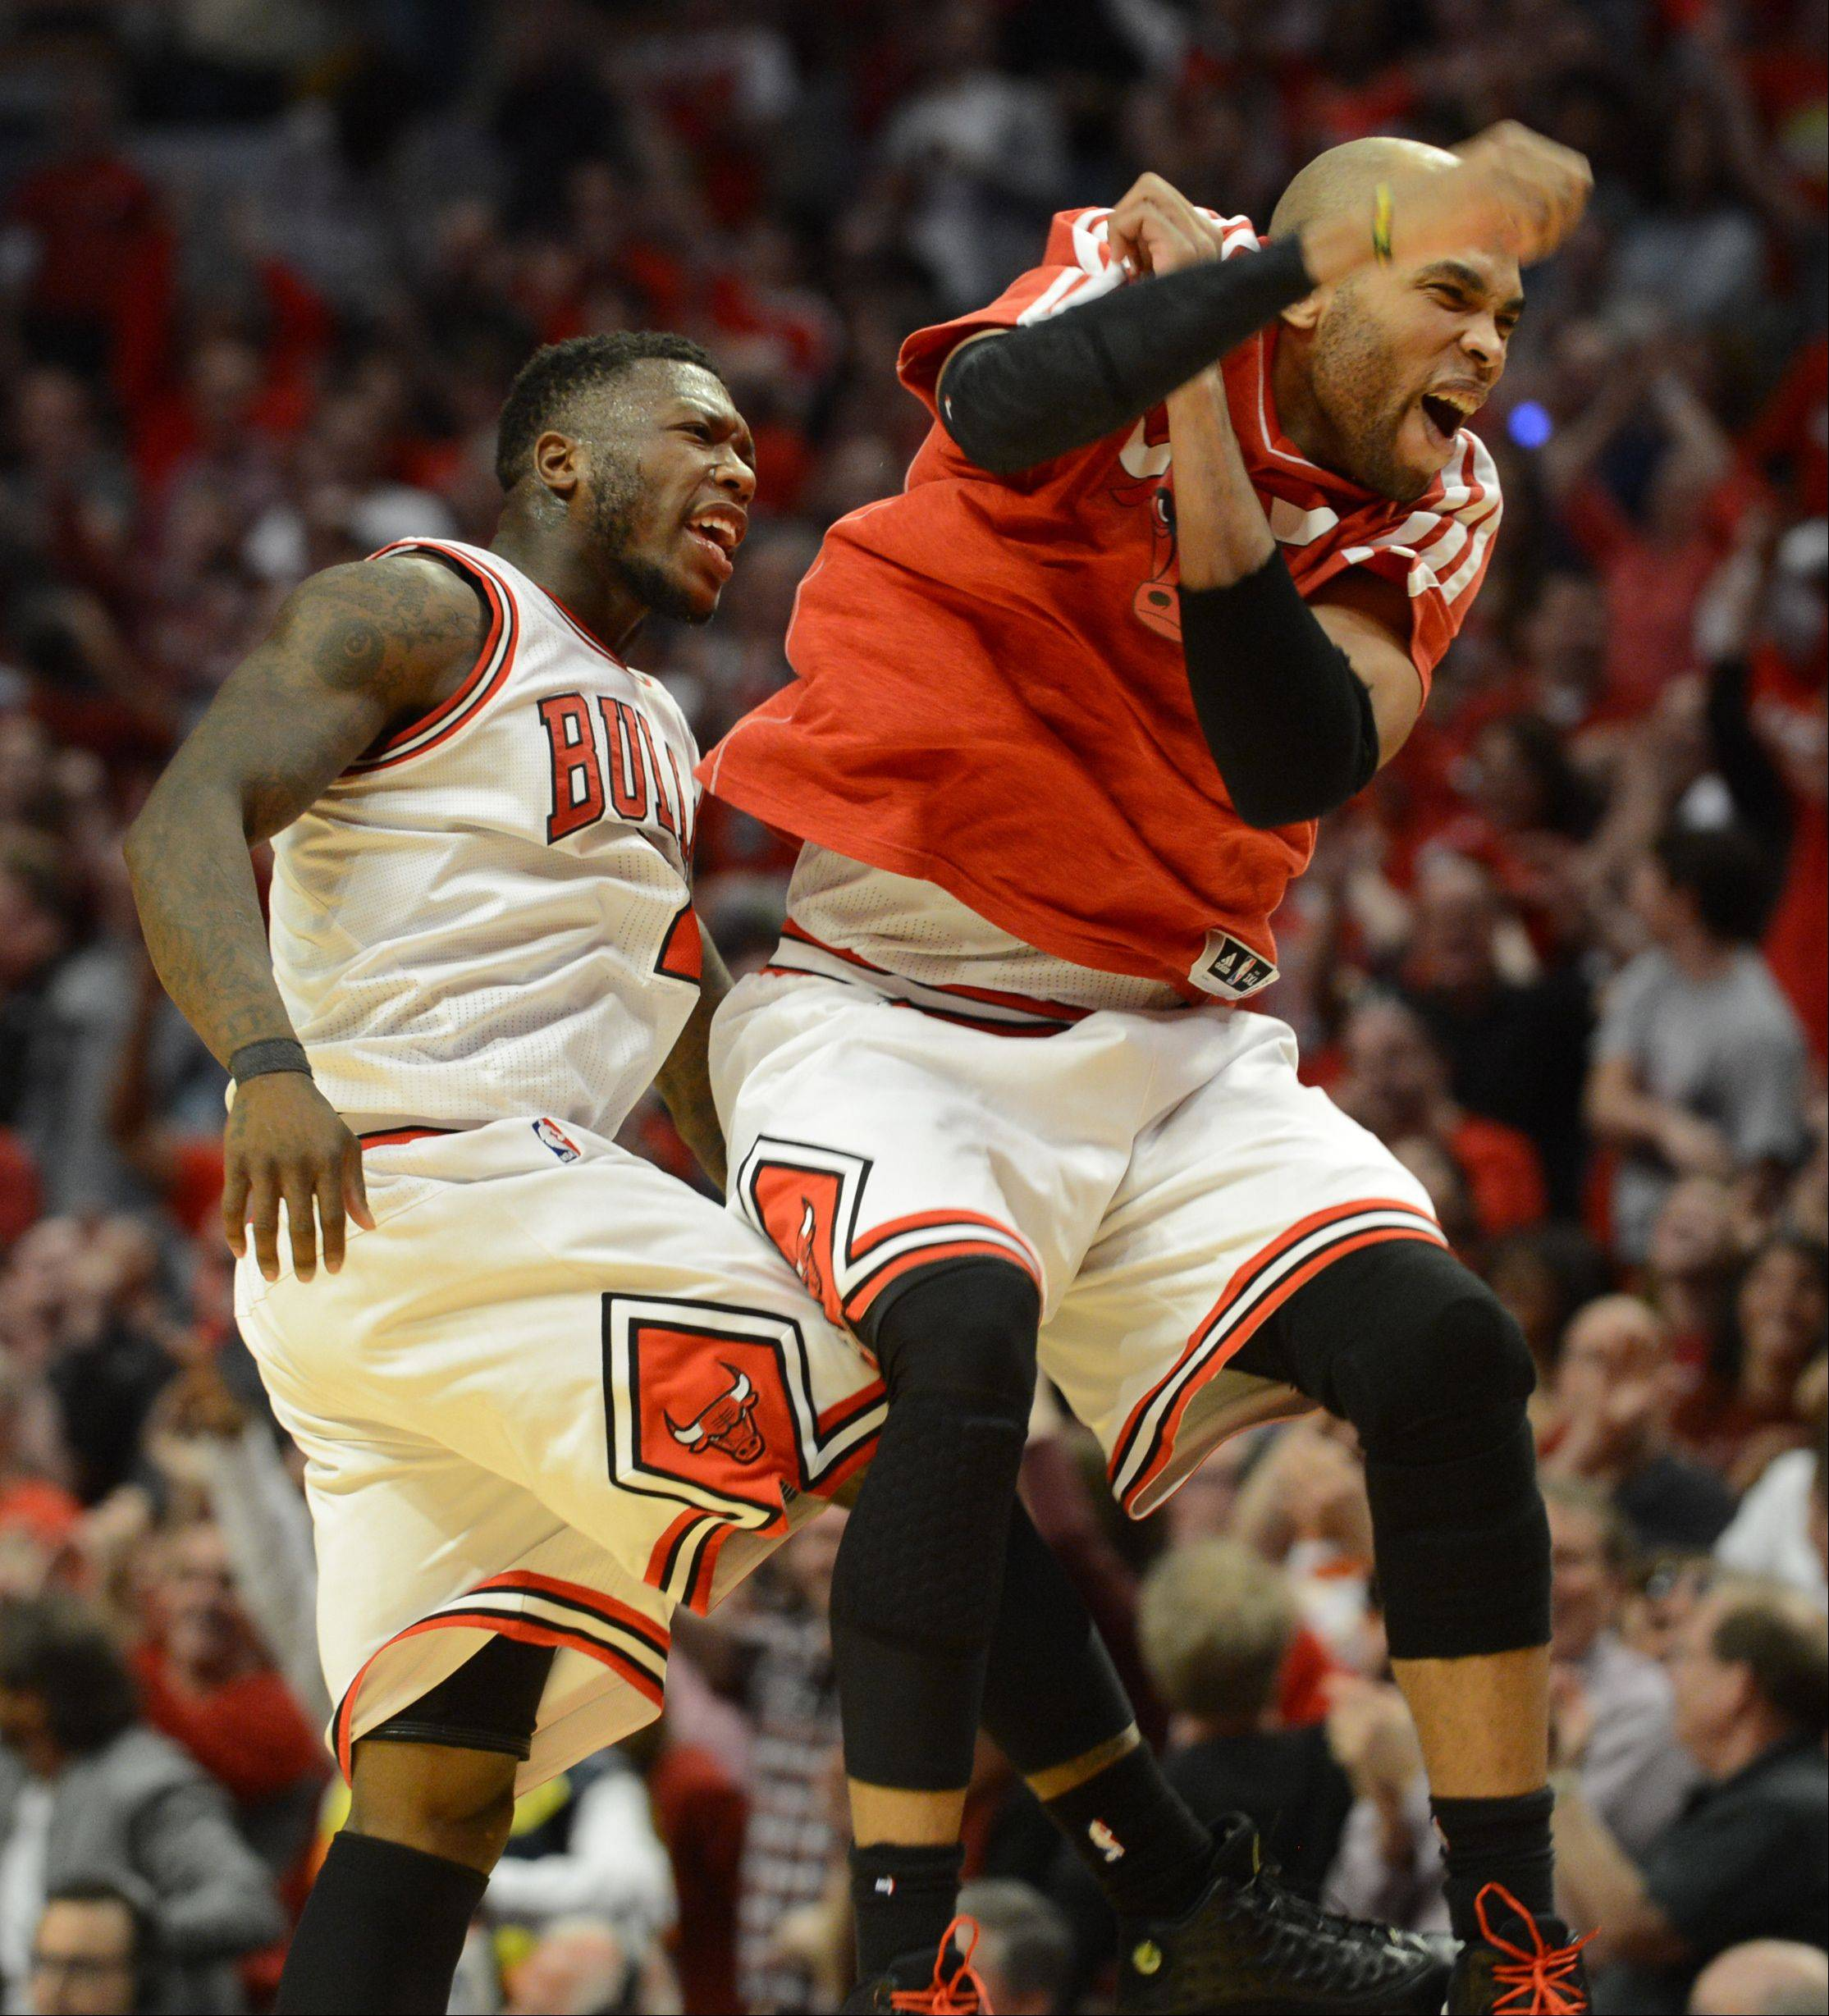 The Bulls Nate Robinson, left, and Taj Gibson celebrate Robinson's basket in the first overtime Saturday during game 4 of the first round playoff game against the Brooklyn Nets at the United Center. The Bulls won in triple overtime 142-134